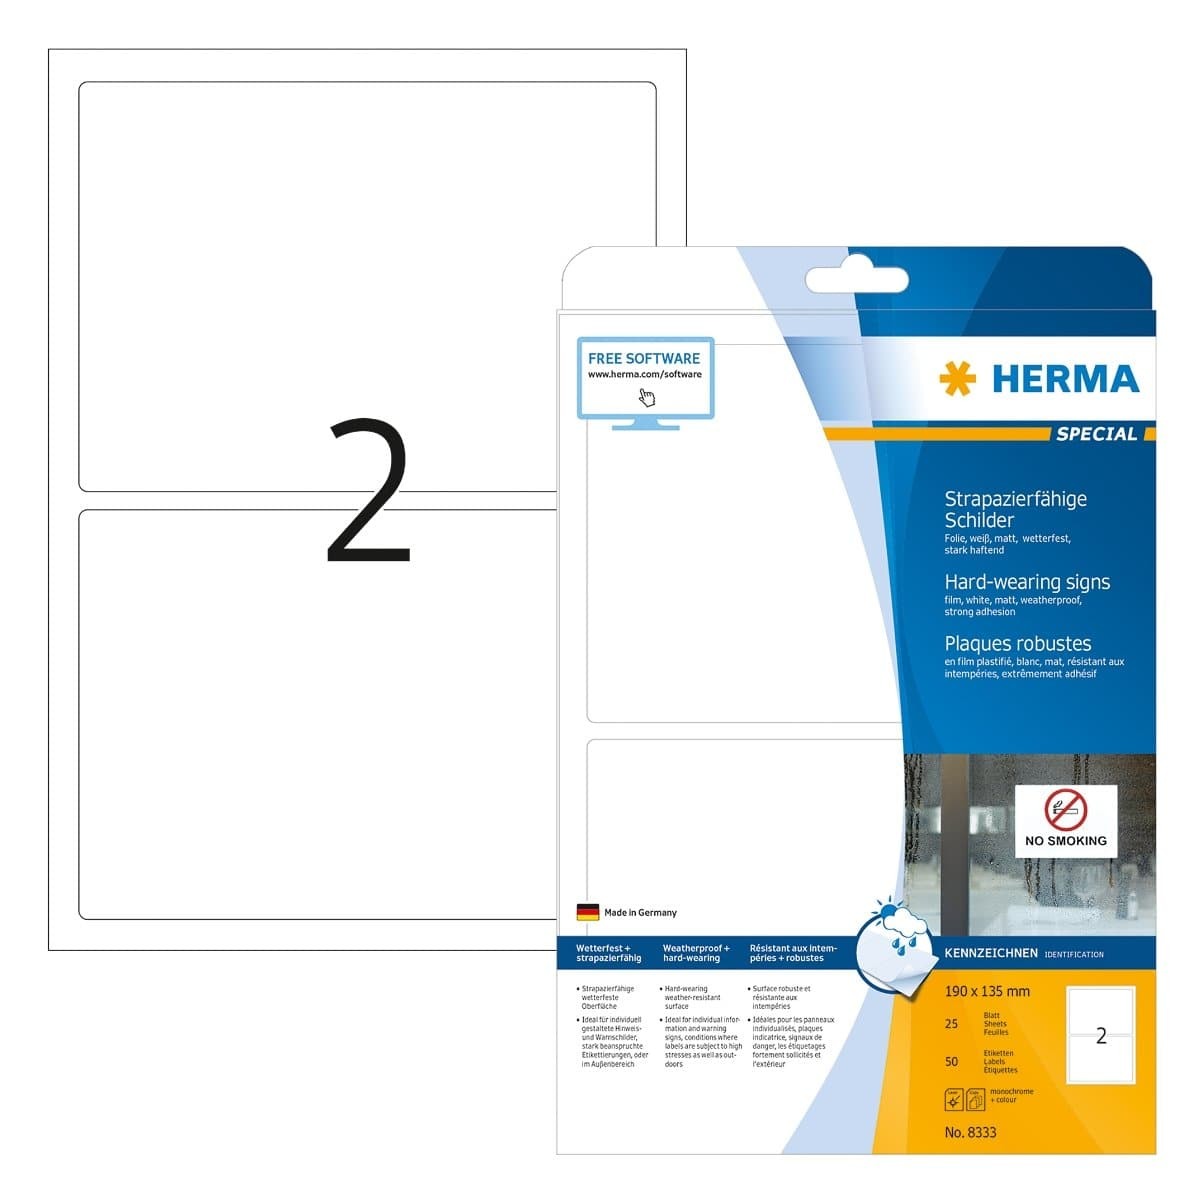 Herma Weatherproof Polyester Film, Hard-wearing Label, 190 x 135 mm, 50/pack, White